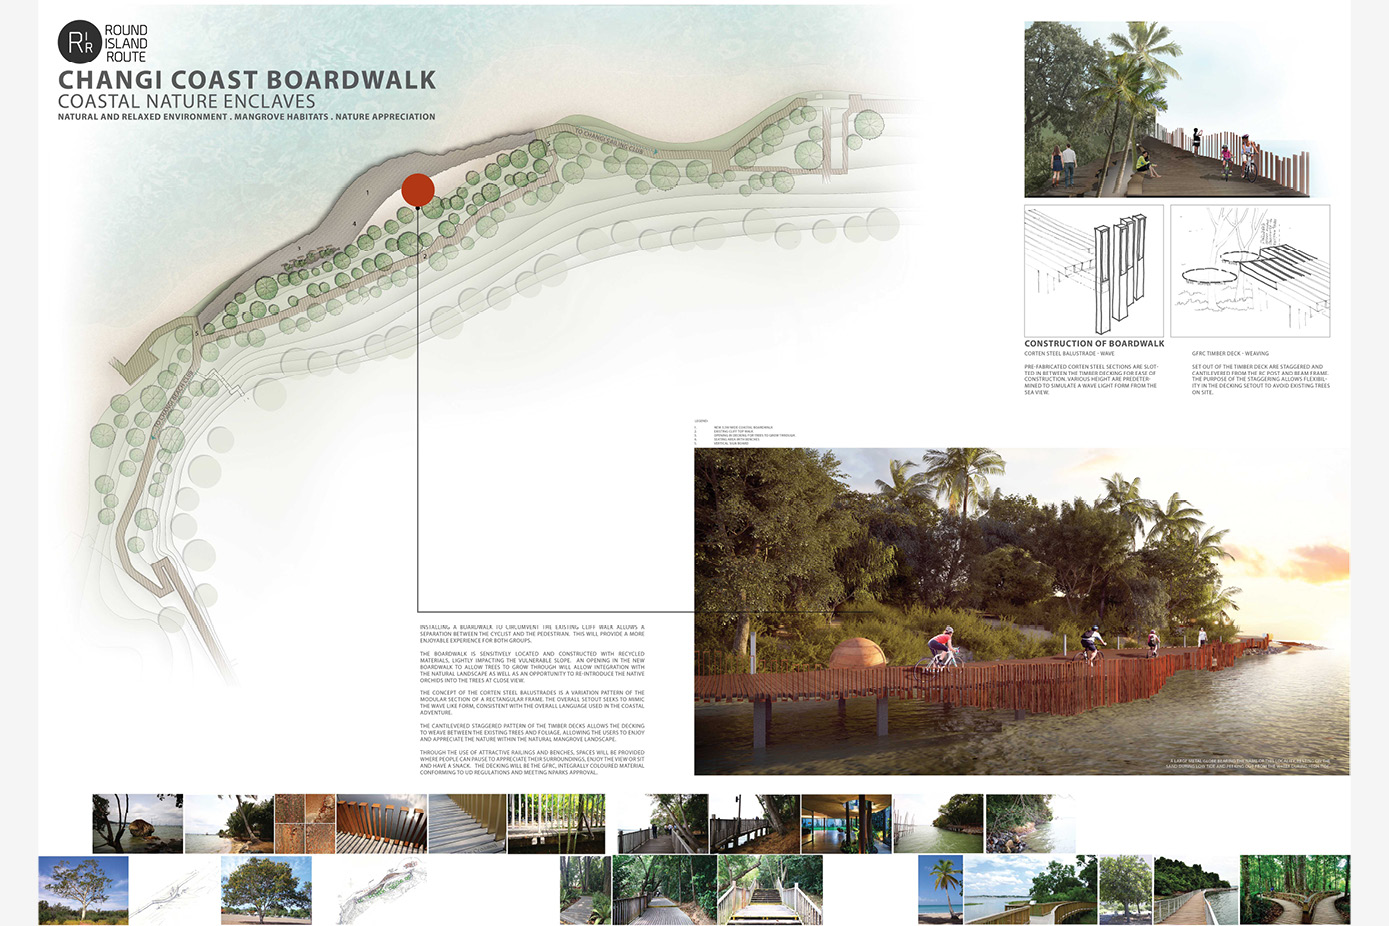 ROUND ISLAND ROUTE_K2LD_BOARDS_02.jpg